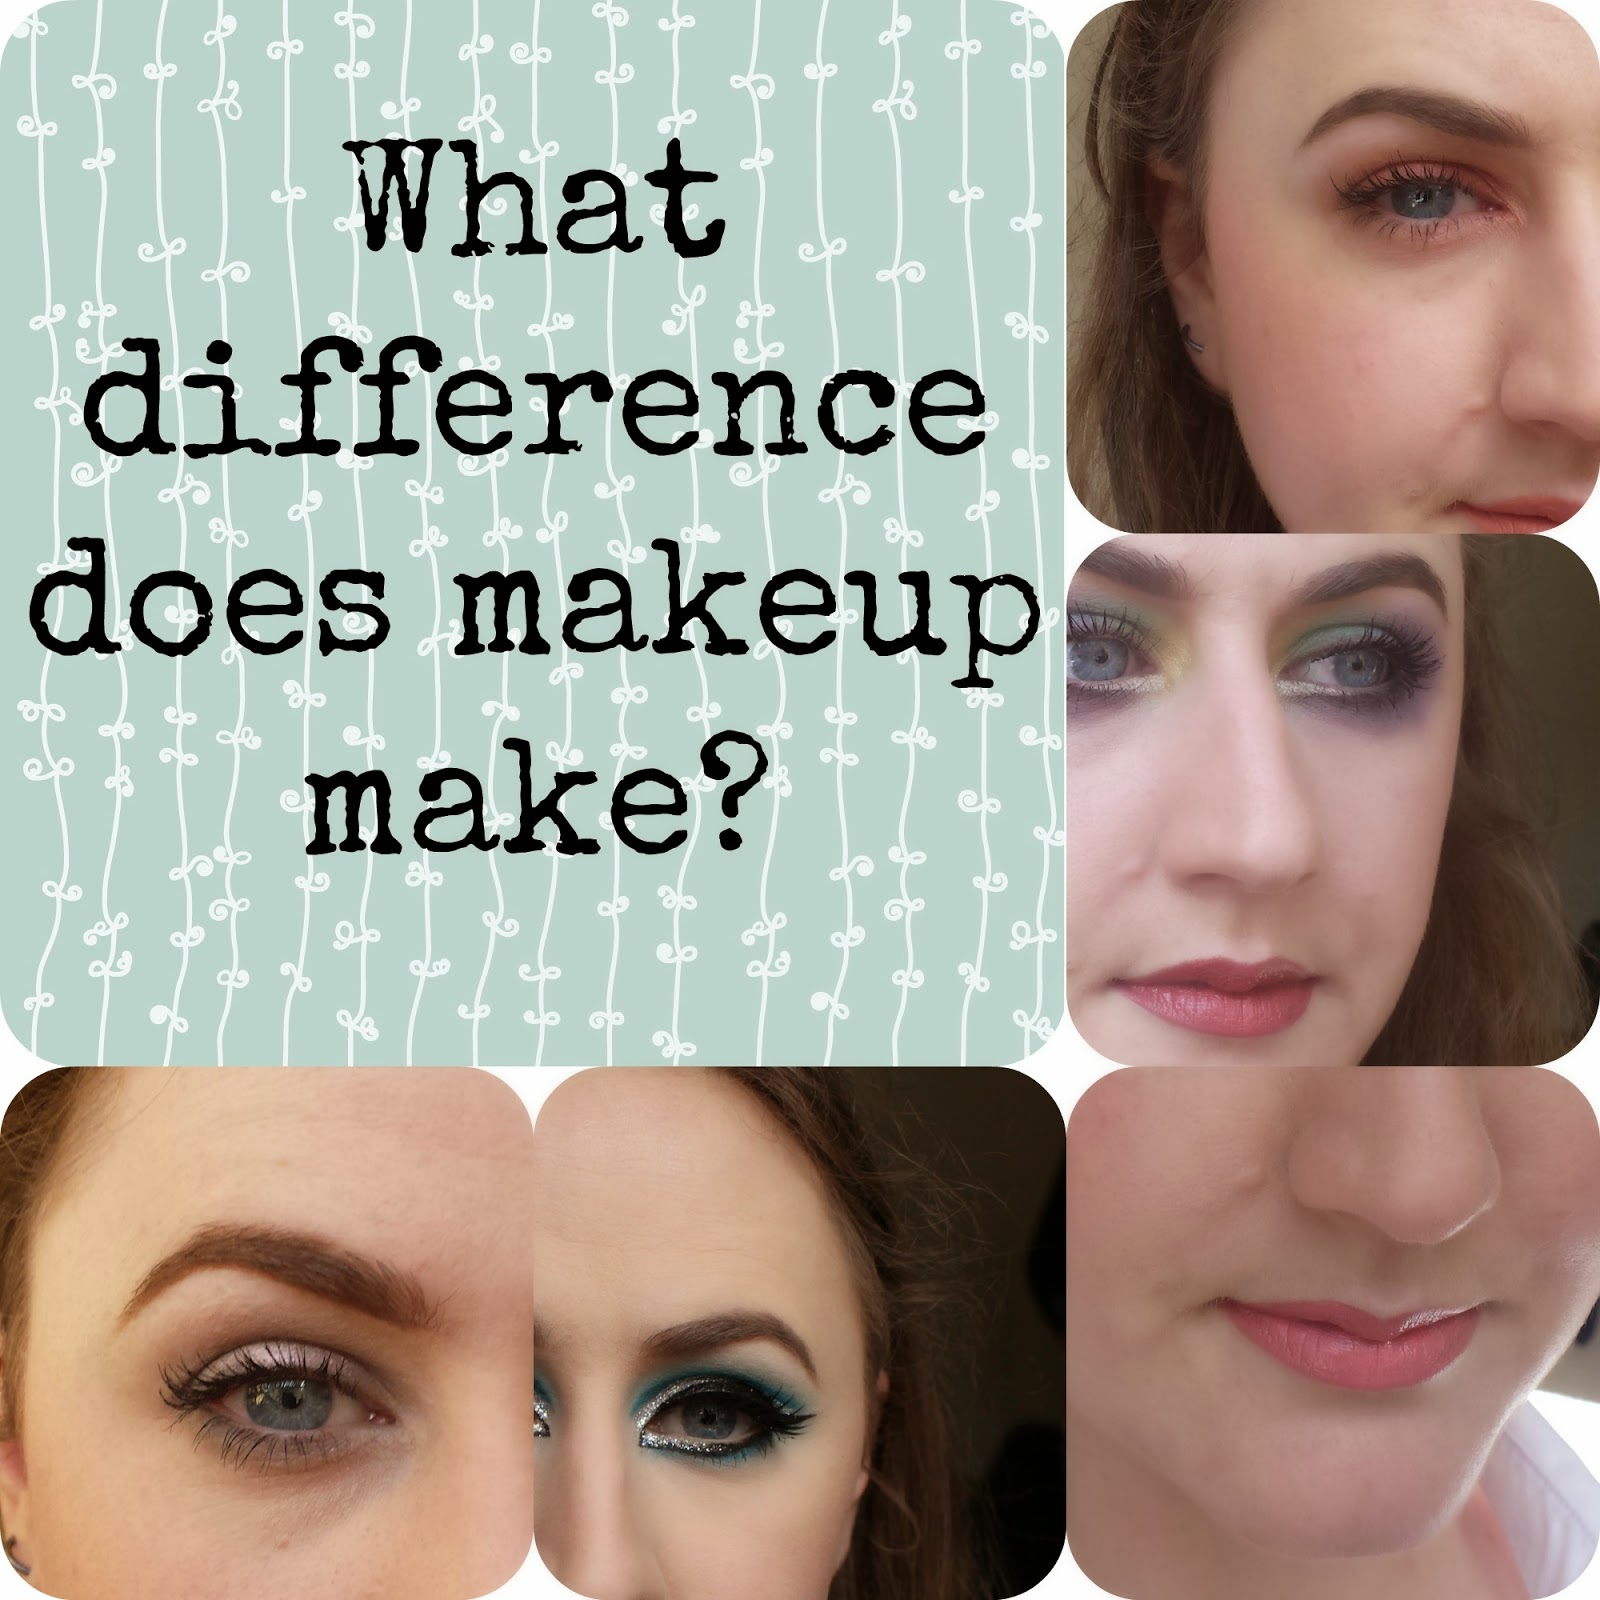 What difference does makeup make?